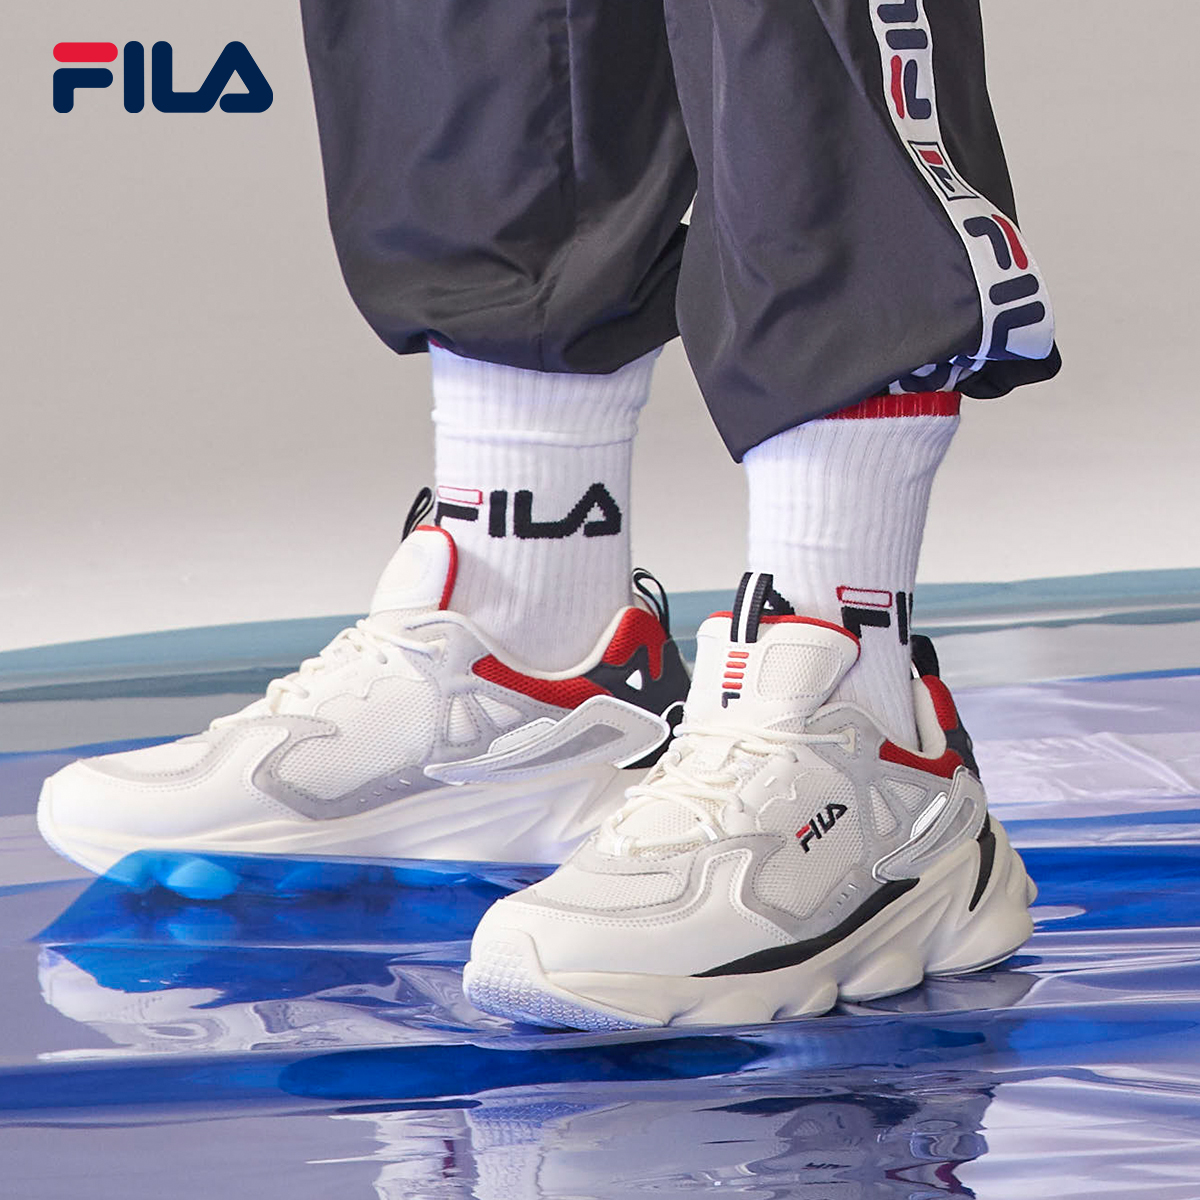 FILA Feile men's shoes official dad shoes spring and summer mesh breathable casual sports shoes men's Retro Running Shoes